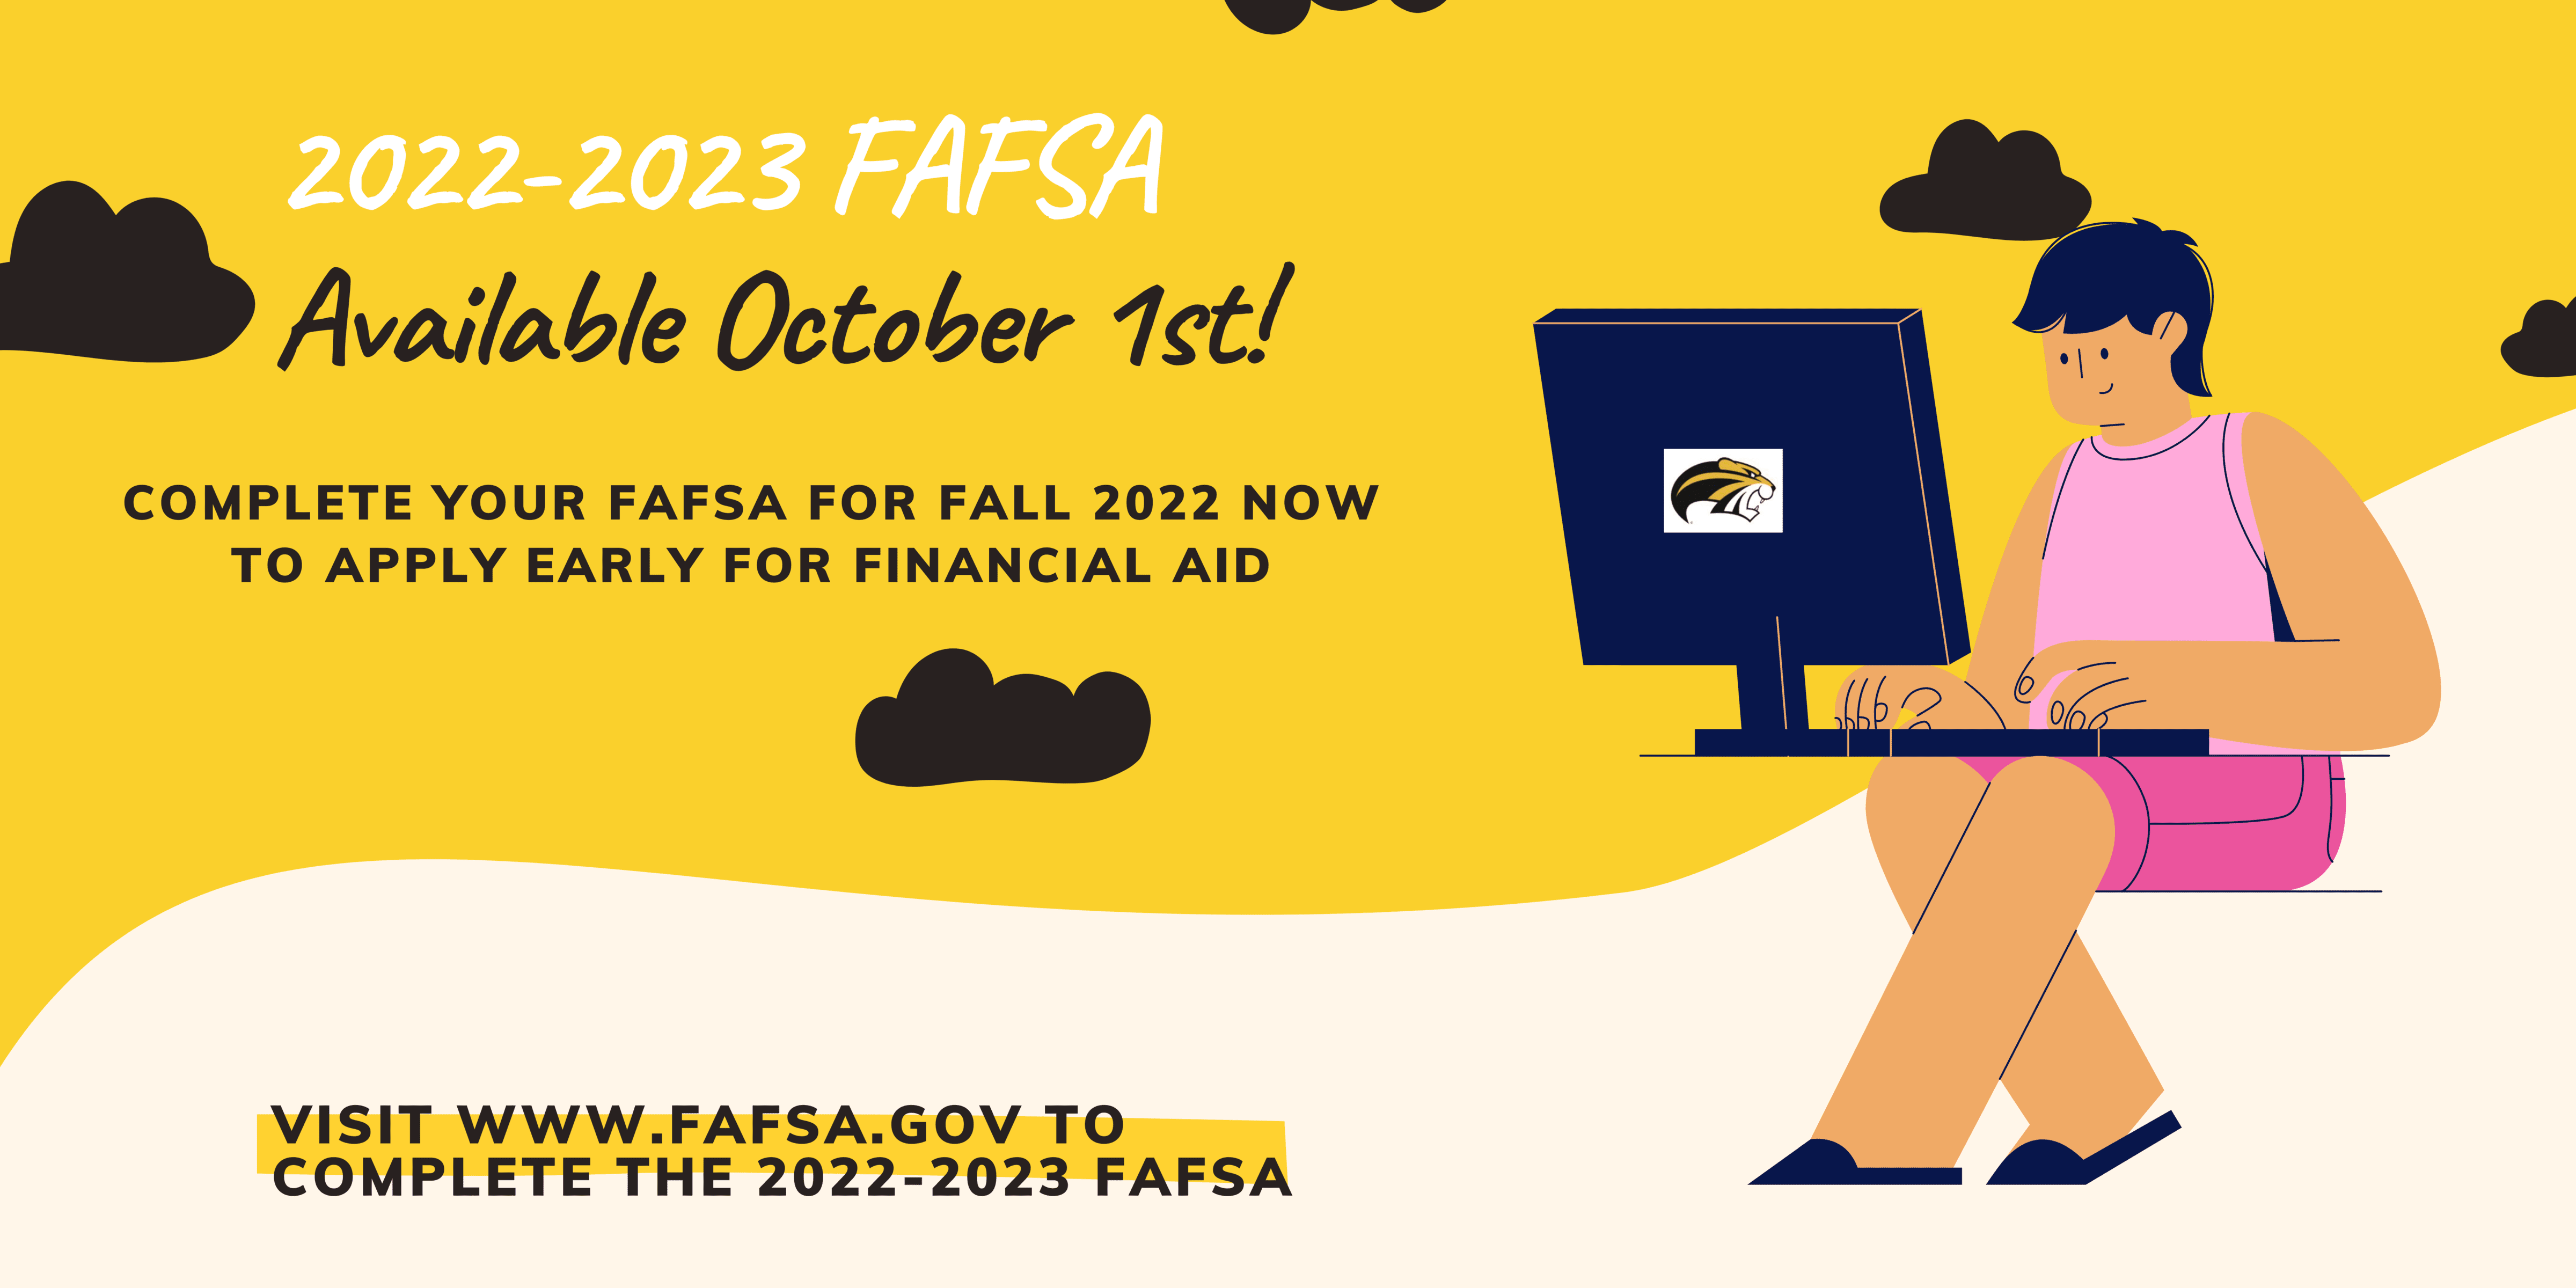 Available October 1st complete your FAFSA for Fall 2022 now to apply early for financial aid